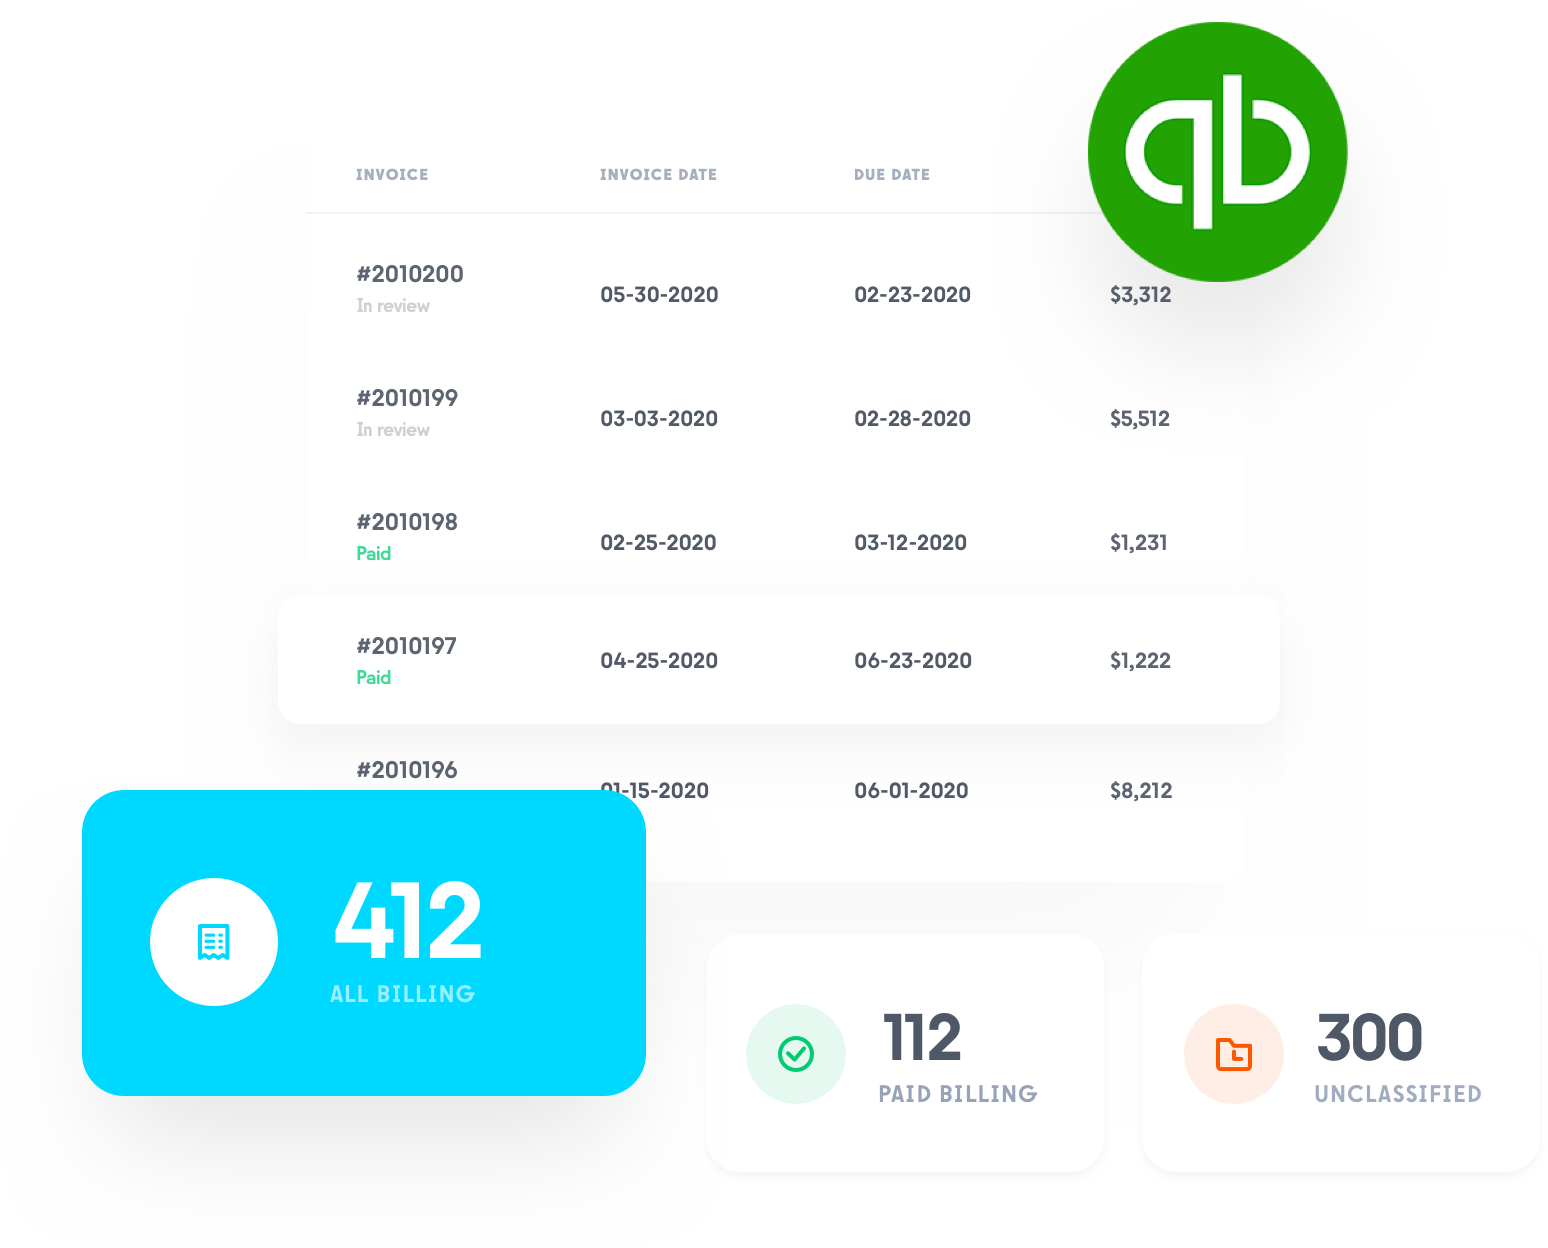 Easy invoicing with system-generated documentation, automatic re-invoicing, rate calculation & driver settlements.